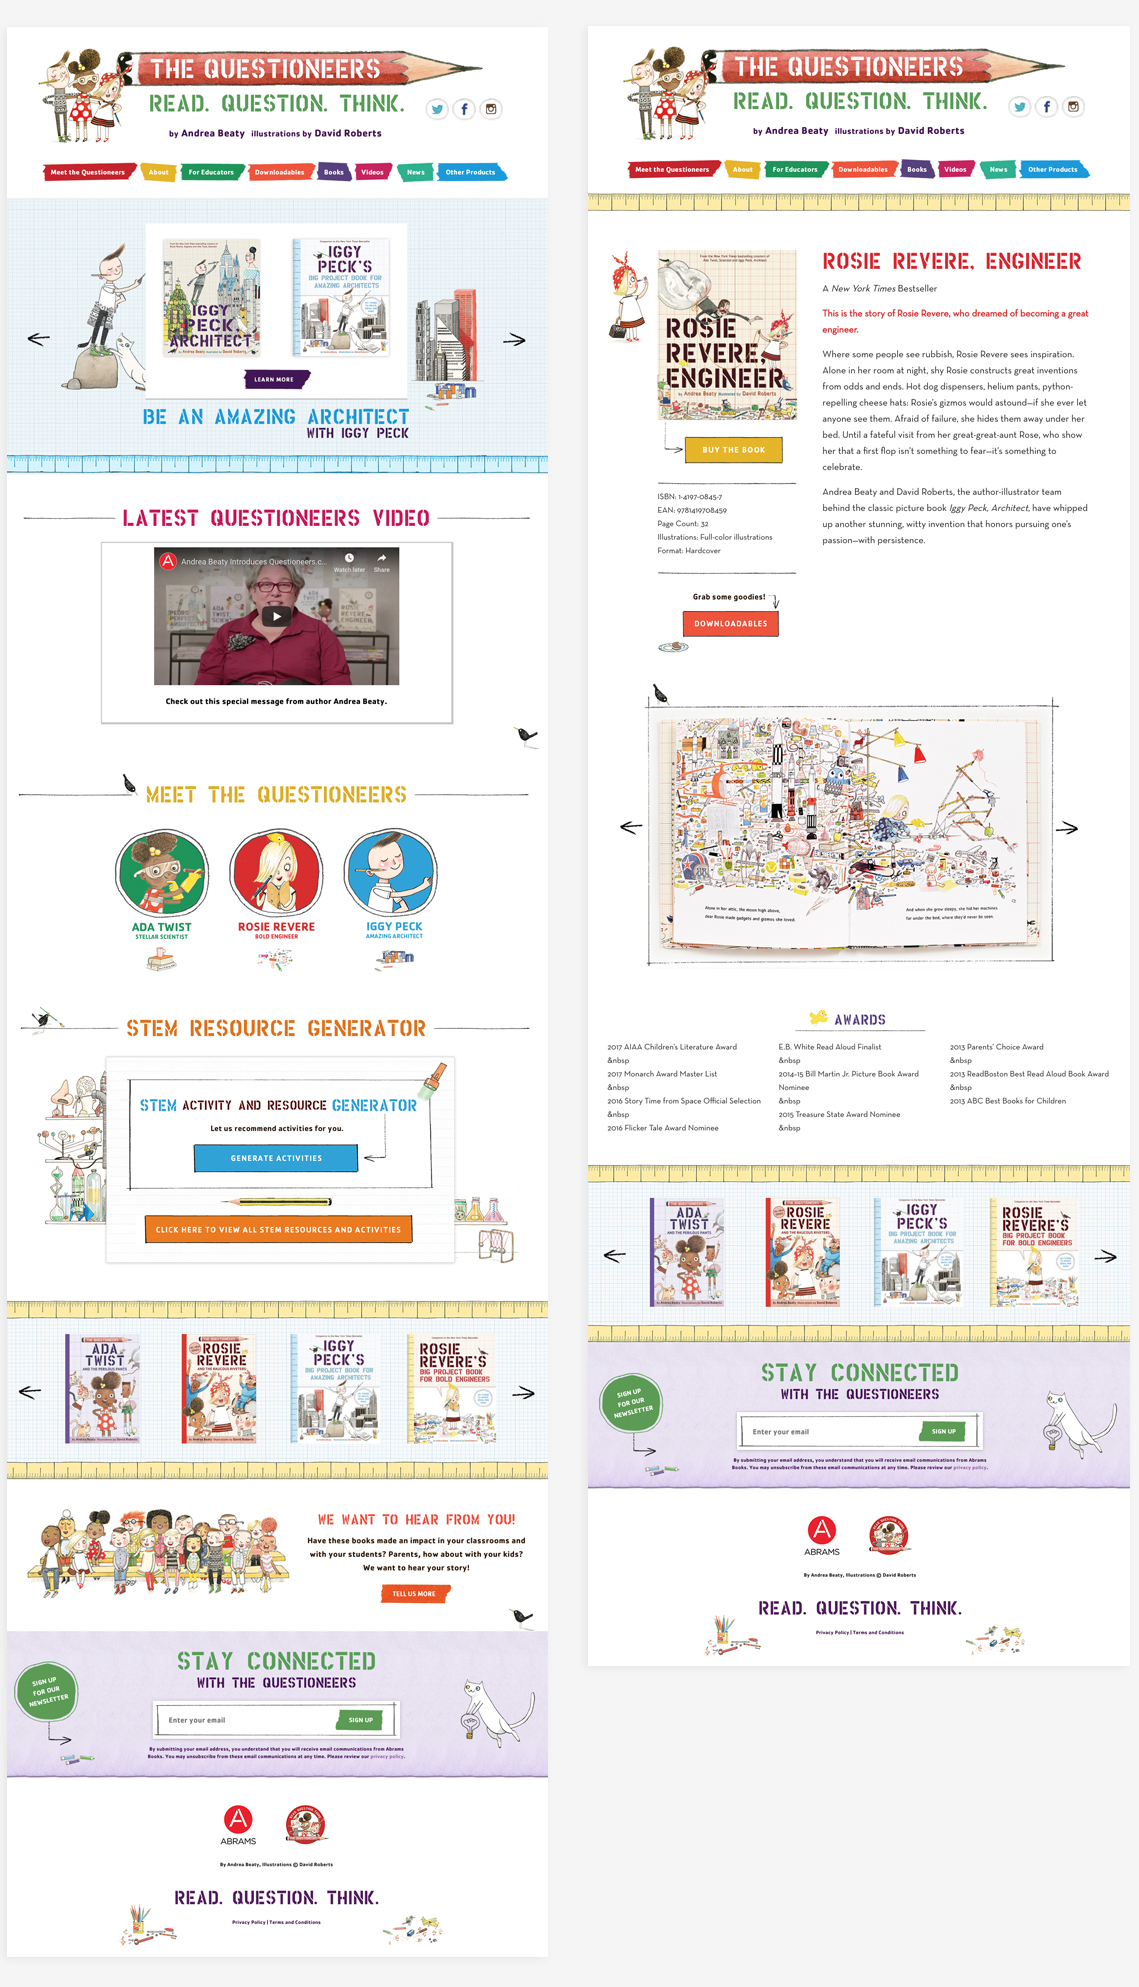 Full design details for The Questioneers with full homepage and individual book view